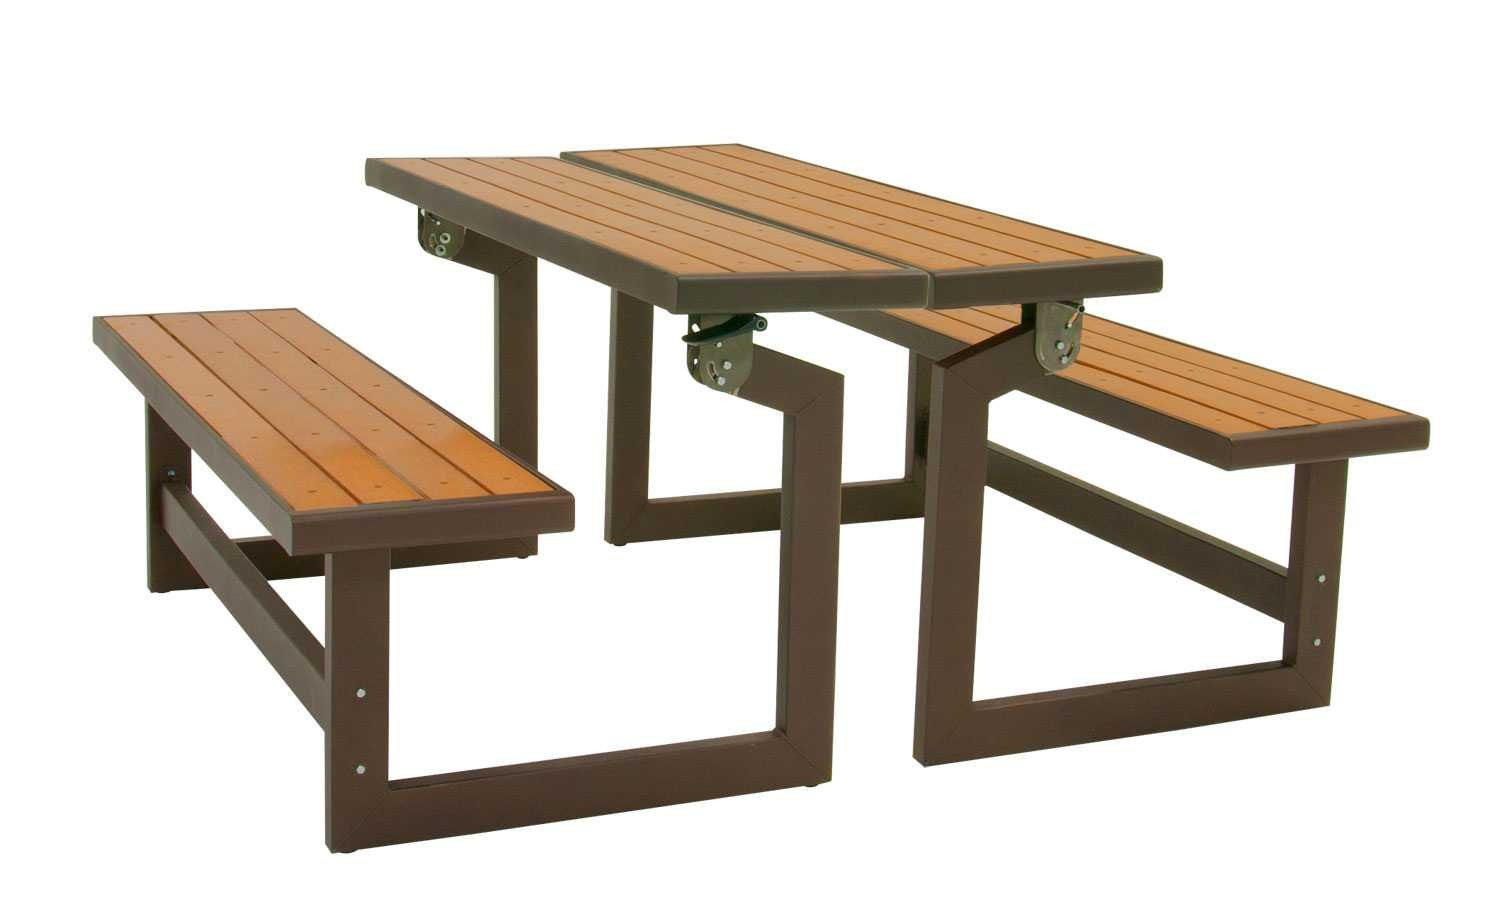 Amazon.com : Lifetime 60054 Convertible Bench / Table, Faux Wood  Construction : Outdoor Benches : Garden U0026 Outdoor